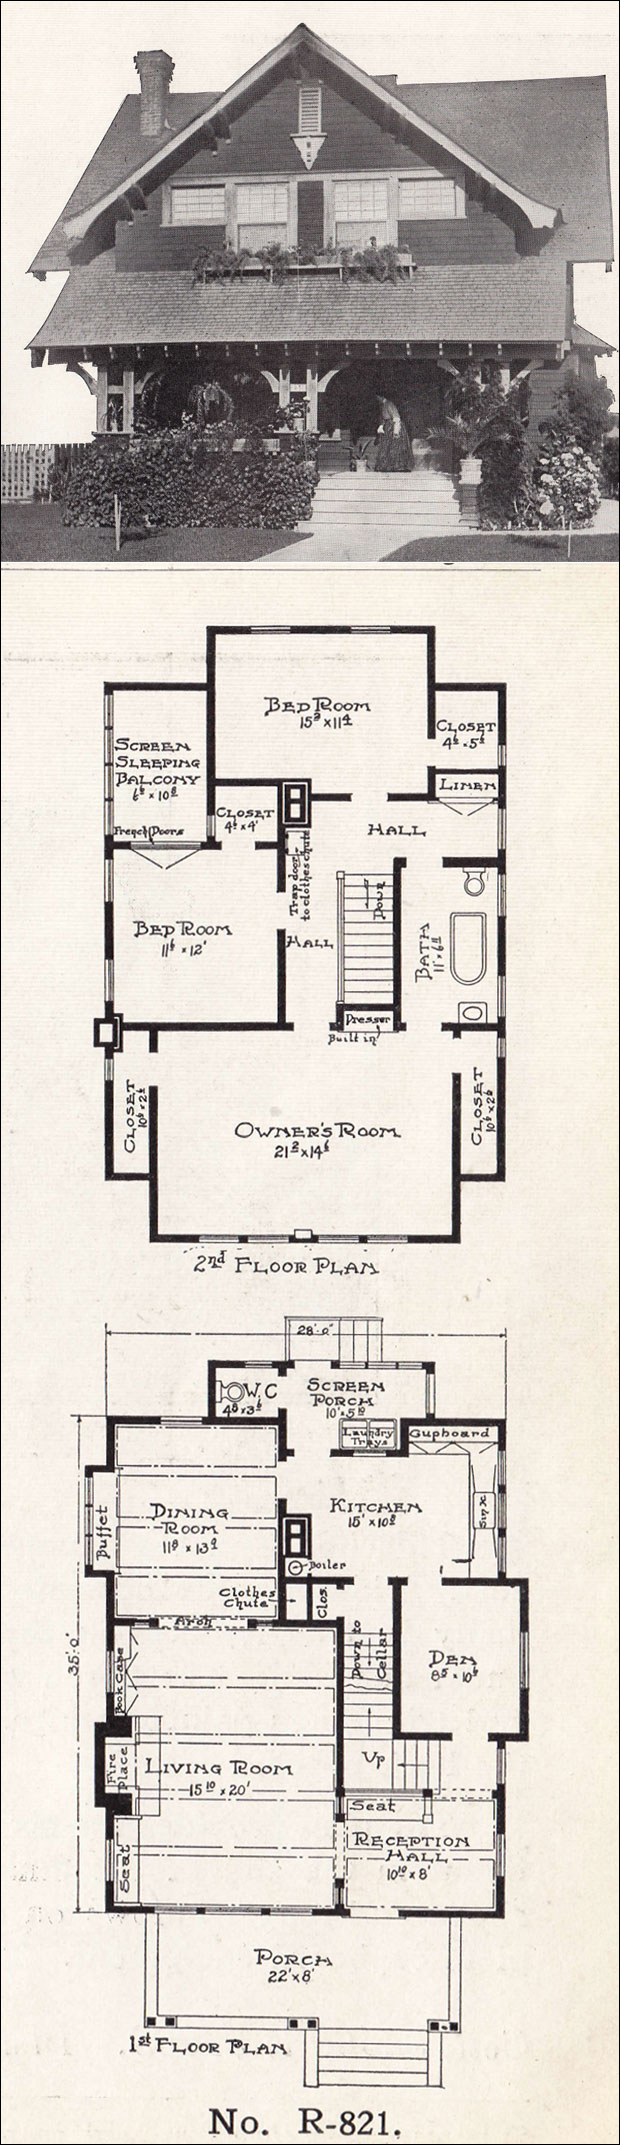 Semi bungalow home design 1918 e w stillwell los angeles California bungalow floor plans